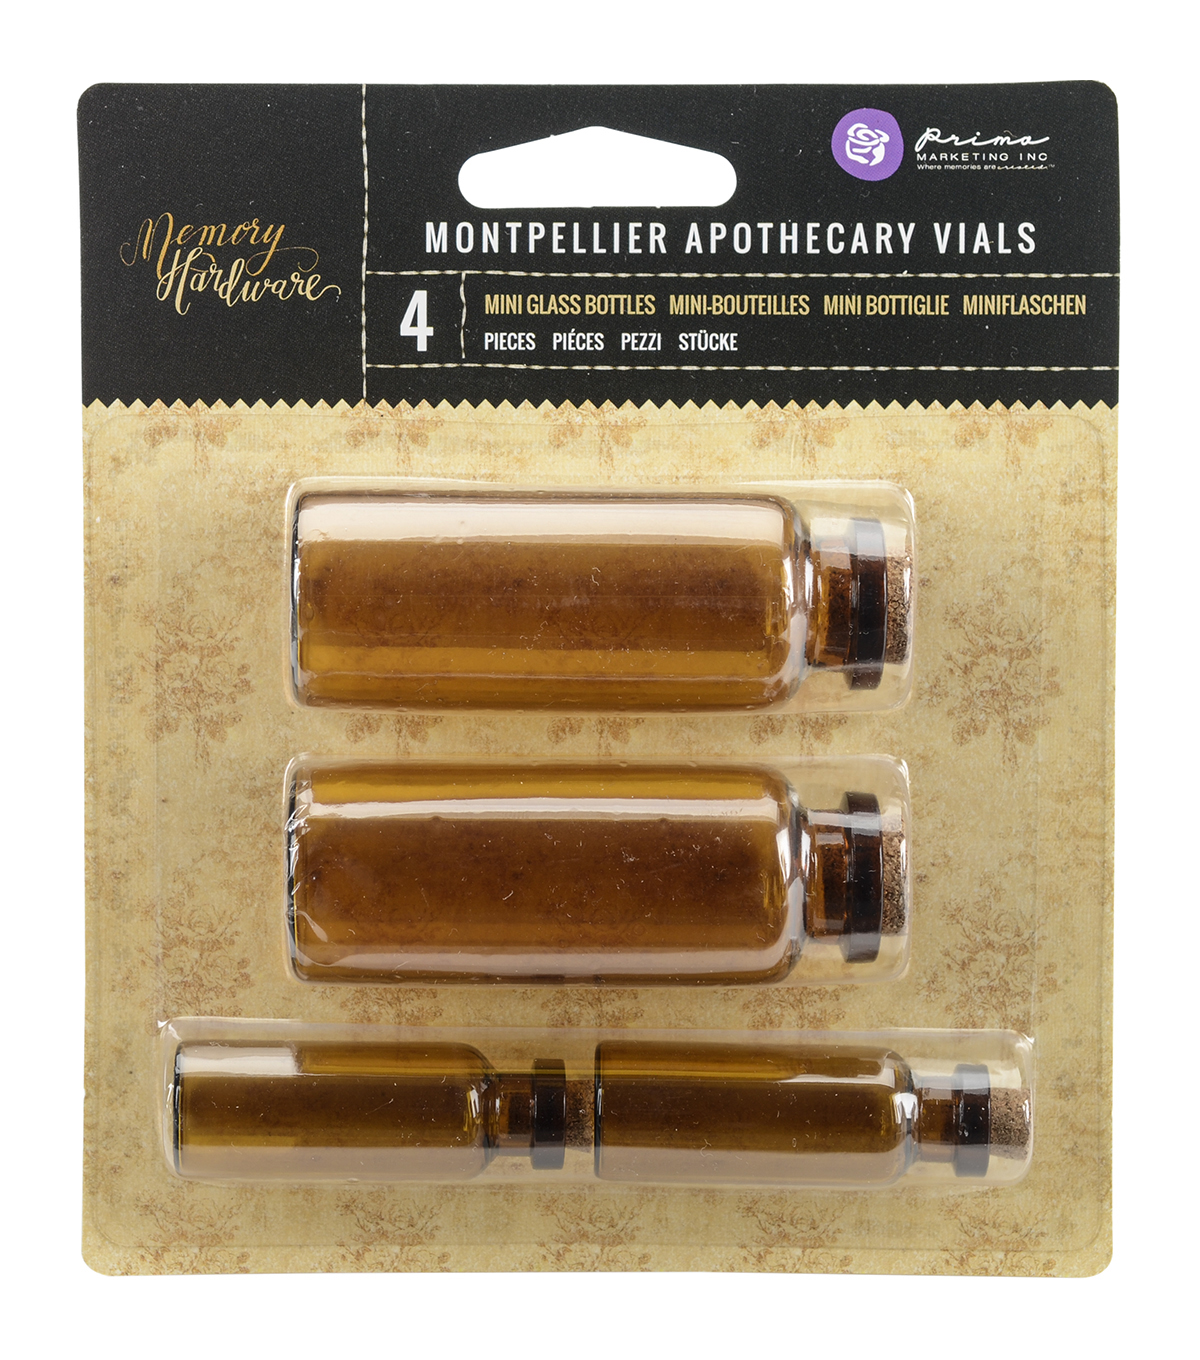 Prima Marketing Memory Hardware 4ct Apothecary Vials-Montpellier Amber